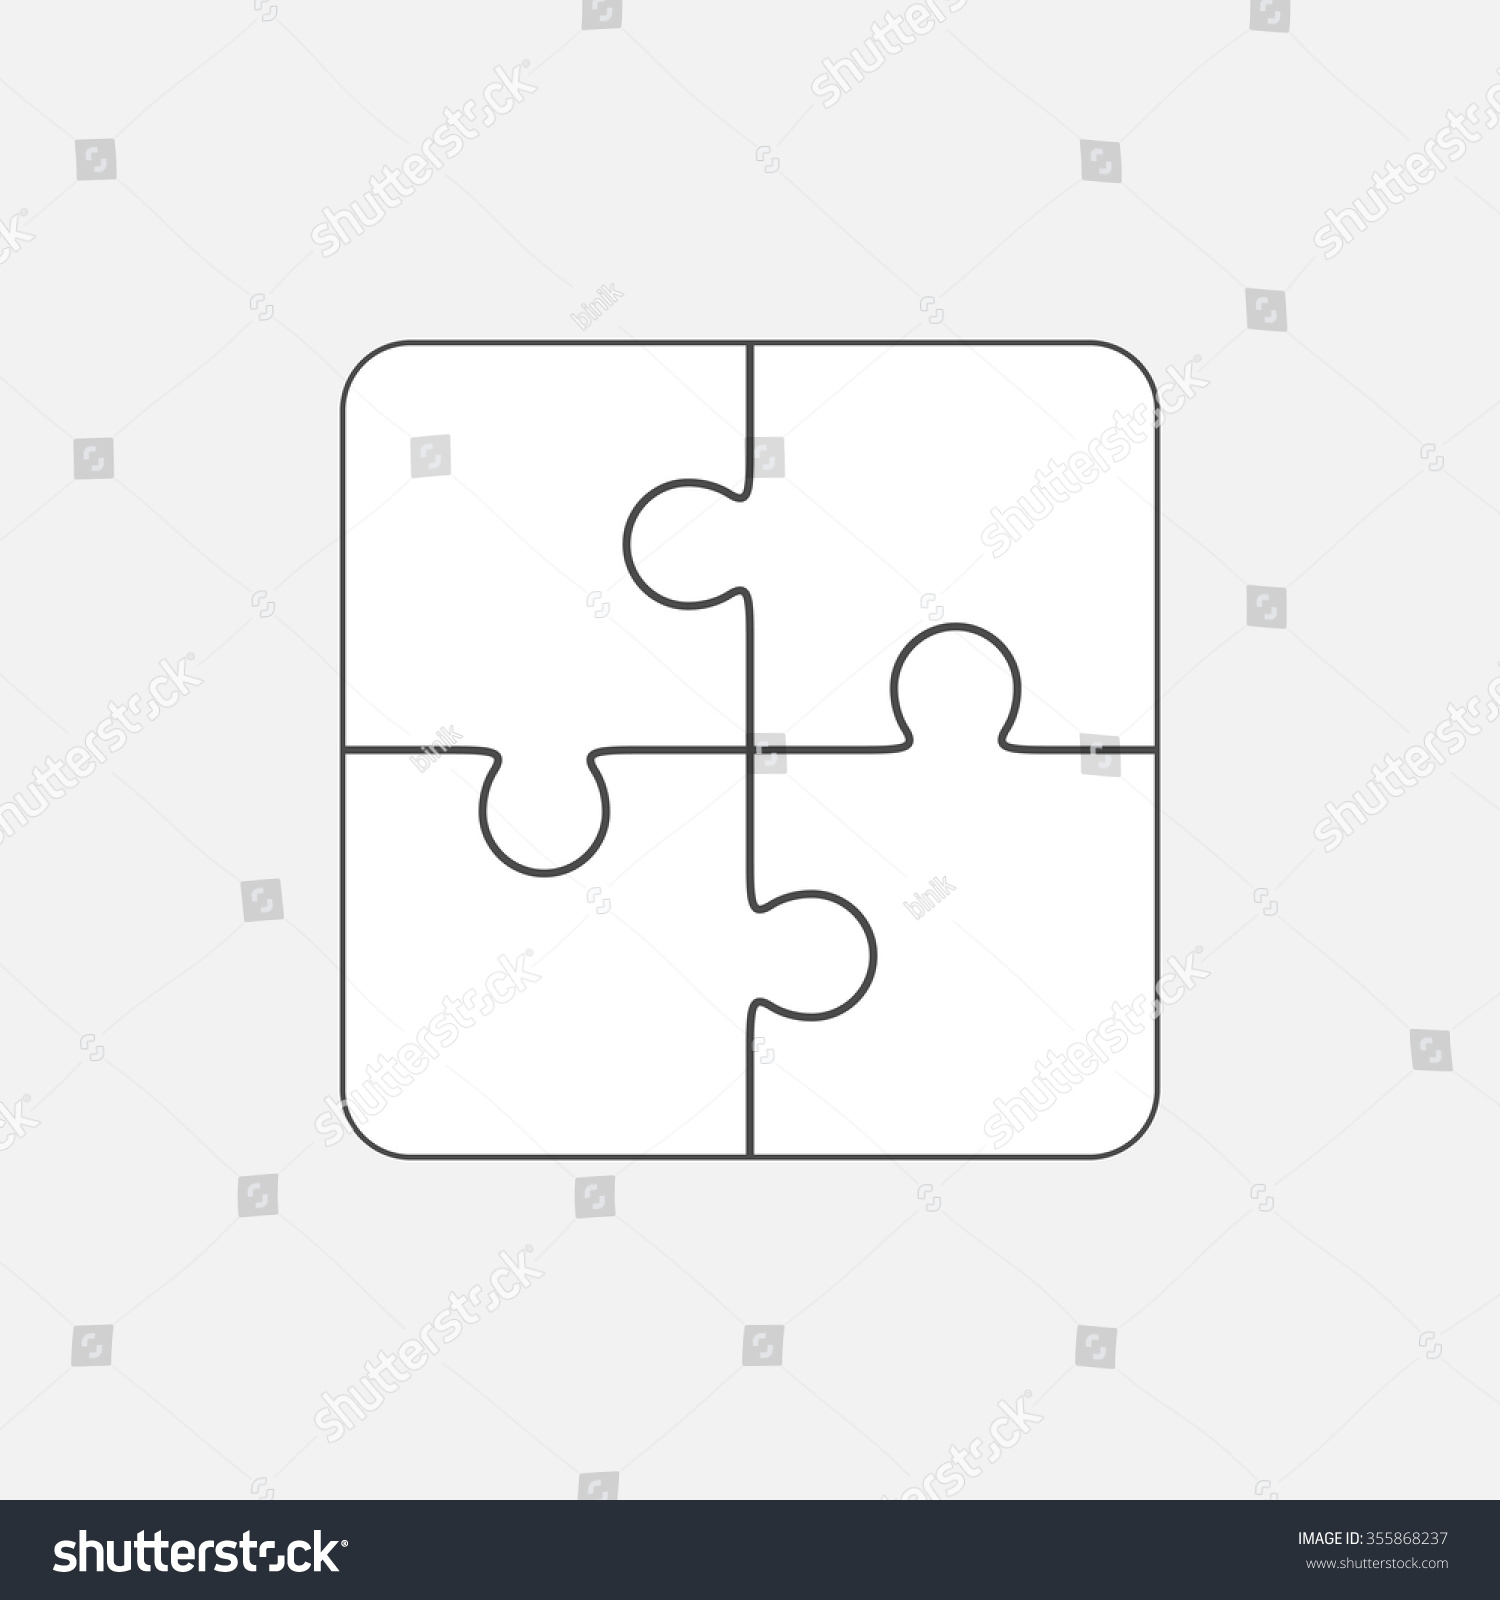 Jigsaw Puzzle Vector Blank Simple Template 2x2 Four Pieces